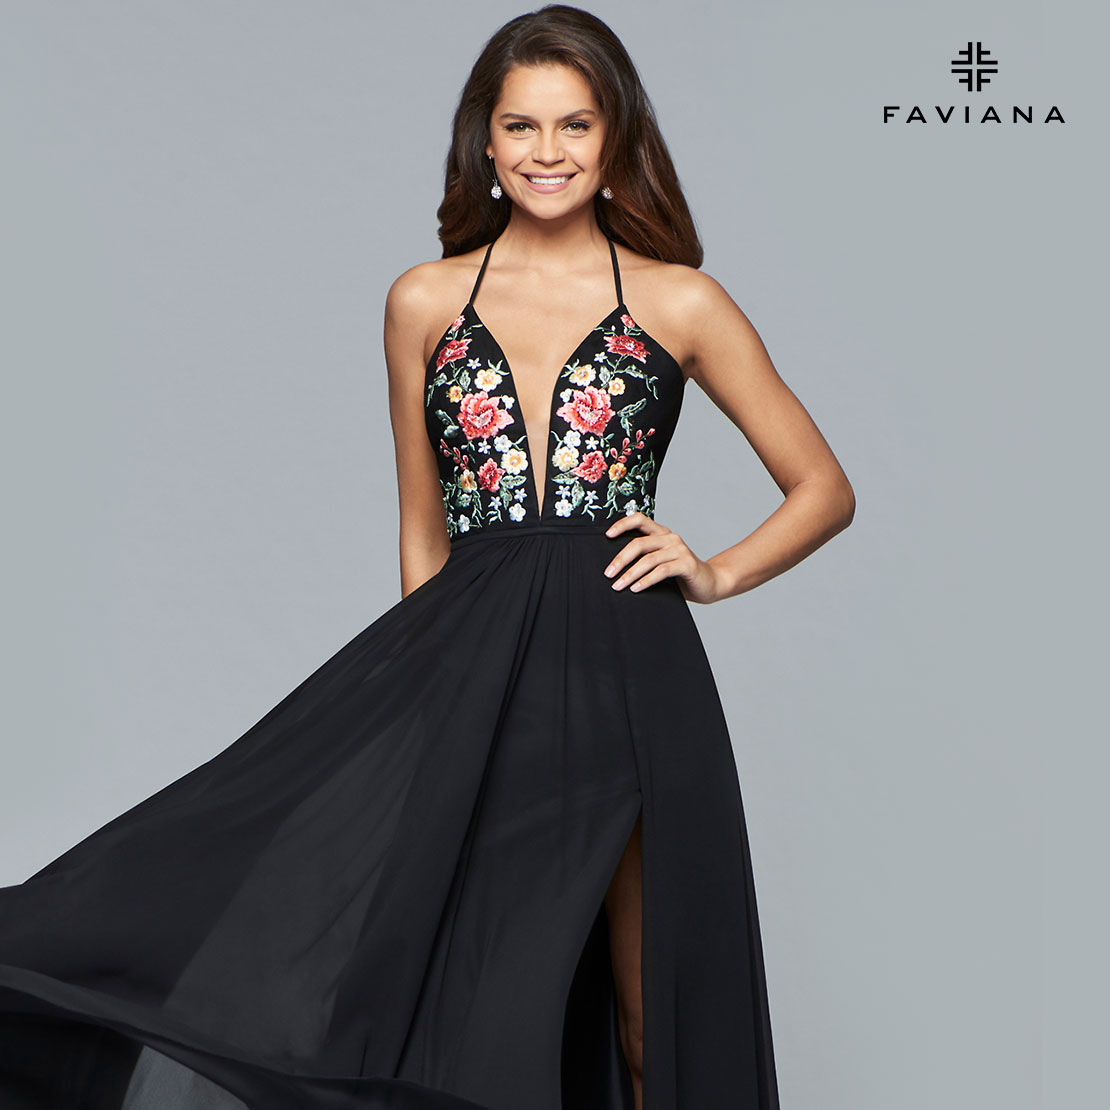 Favianna prom dress embroidered bodice win it wednesday